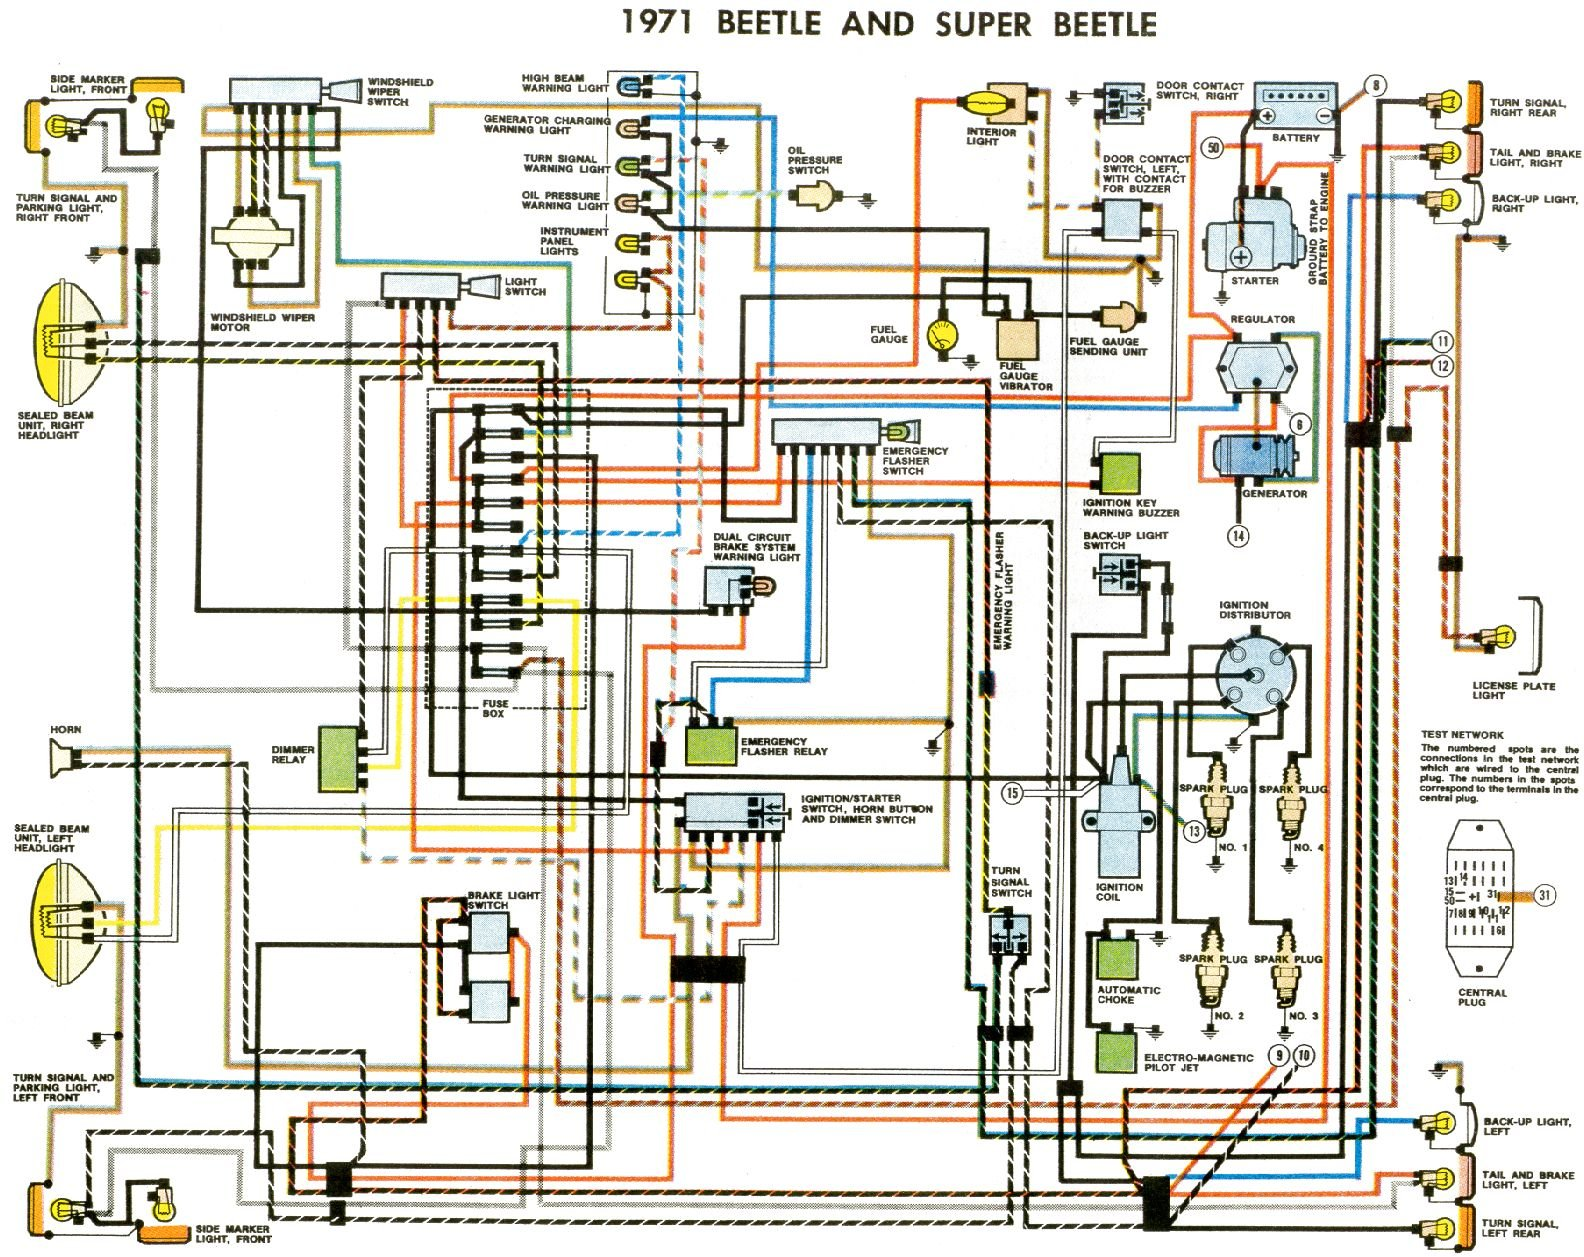 bug_71 1971 beetle wiring diagram (usa) thegoldenbug com volkswagen 2002 beetle wiring diagram at gsmx.co